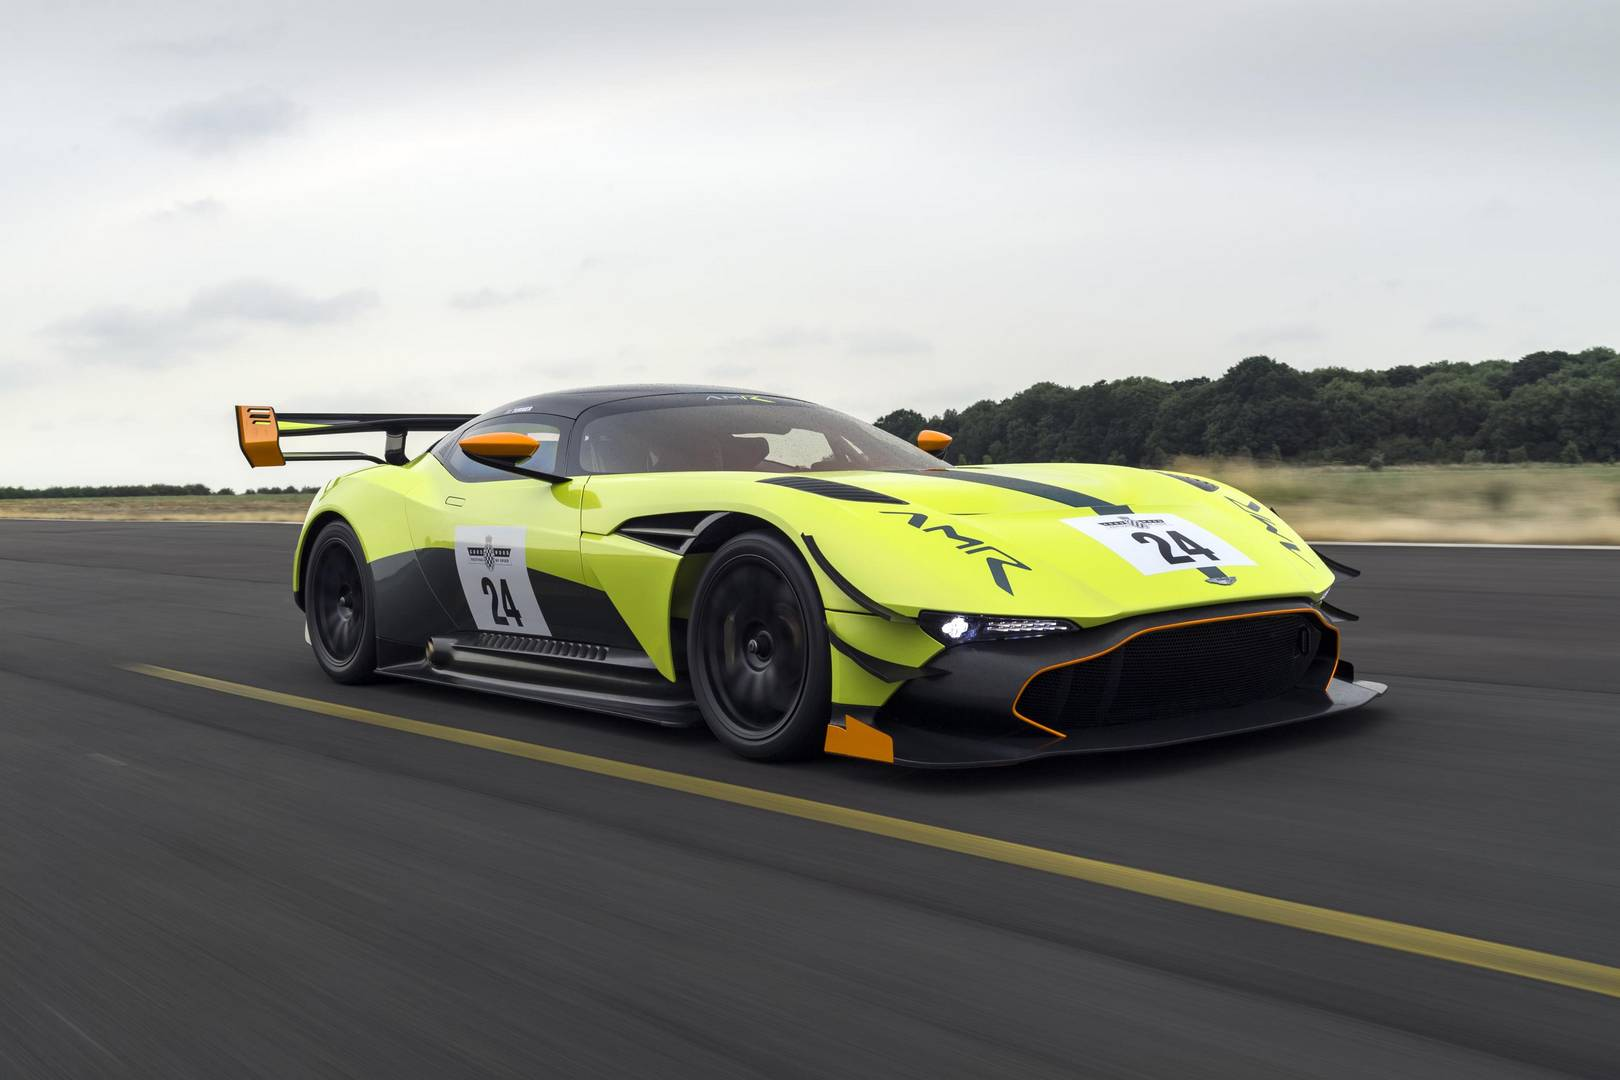 The extreme Aston Martin Vulcan just got more extreme